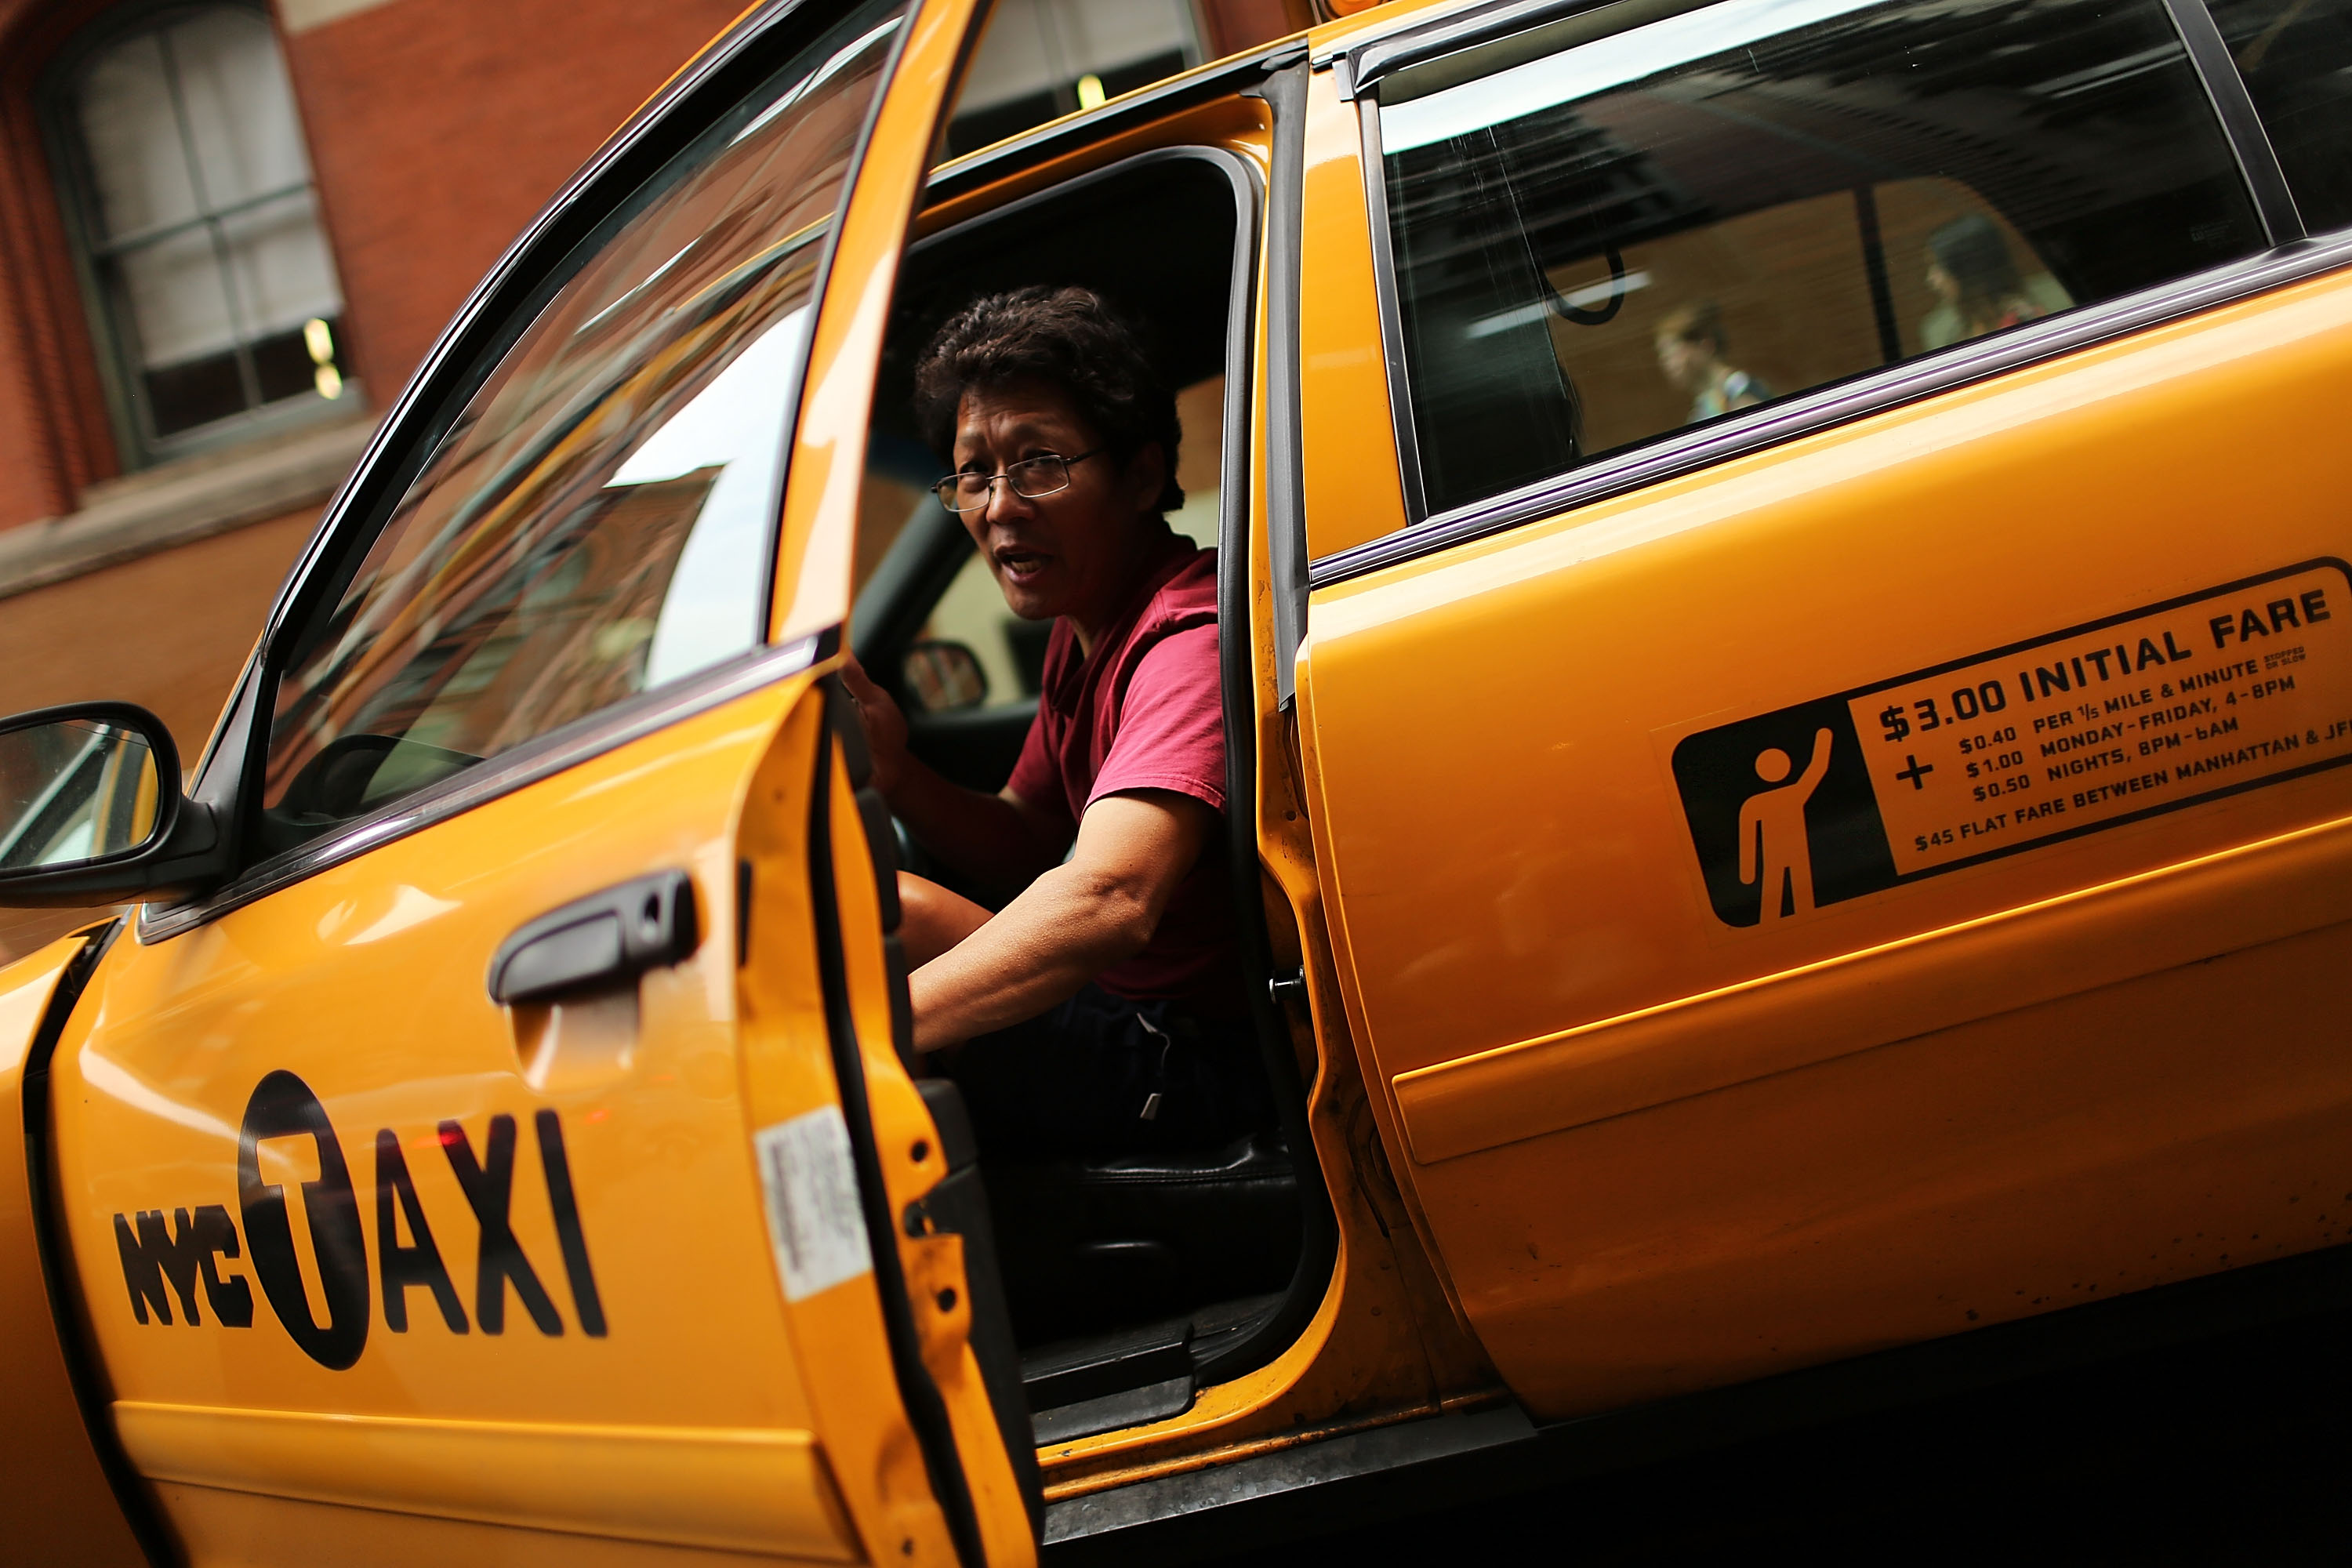 A taxi driver pauses in his vehicle on September 4, 2012 in New York City.